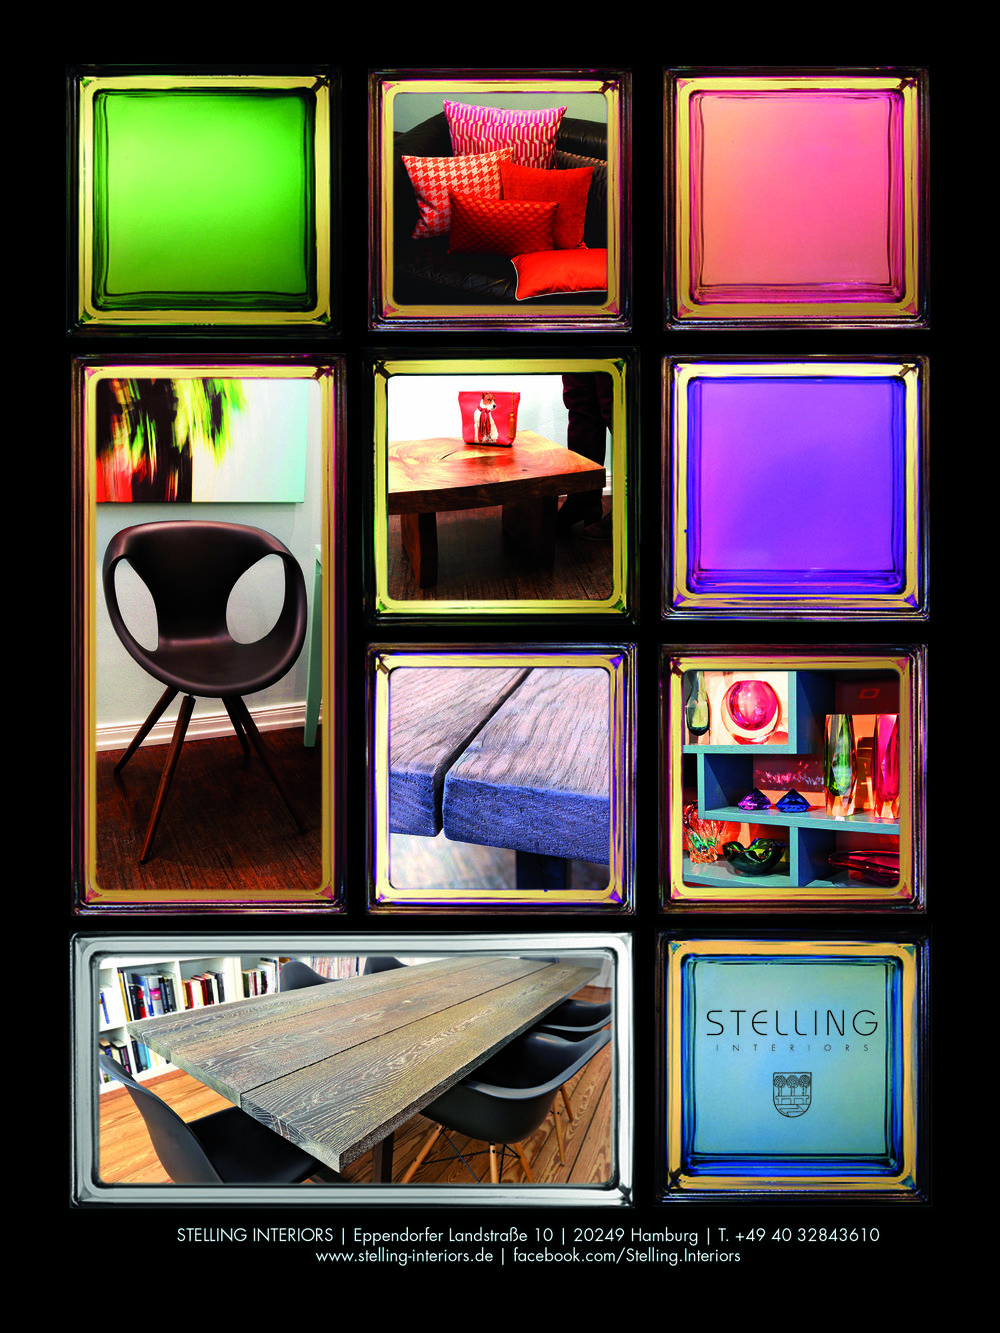 Stelling_Interiors_Anzeige_022013_Preview.jpg